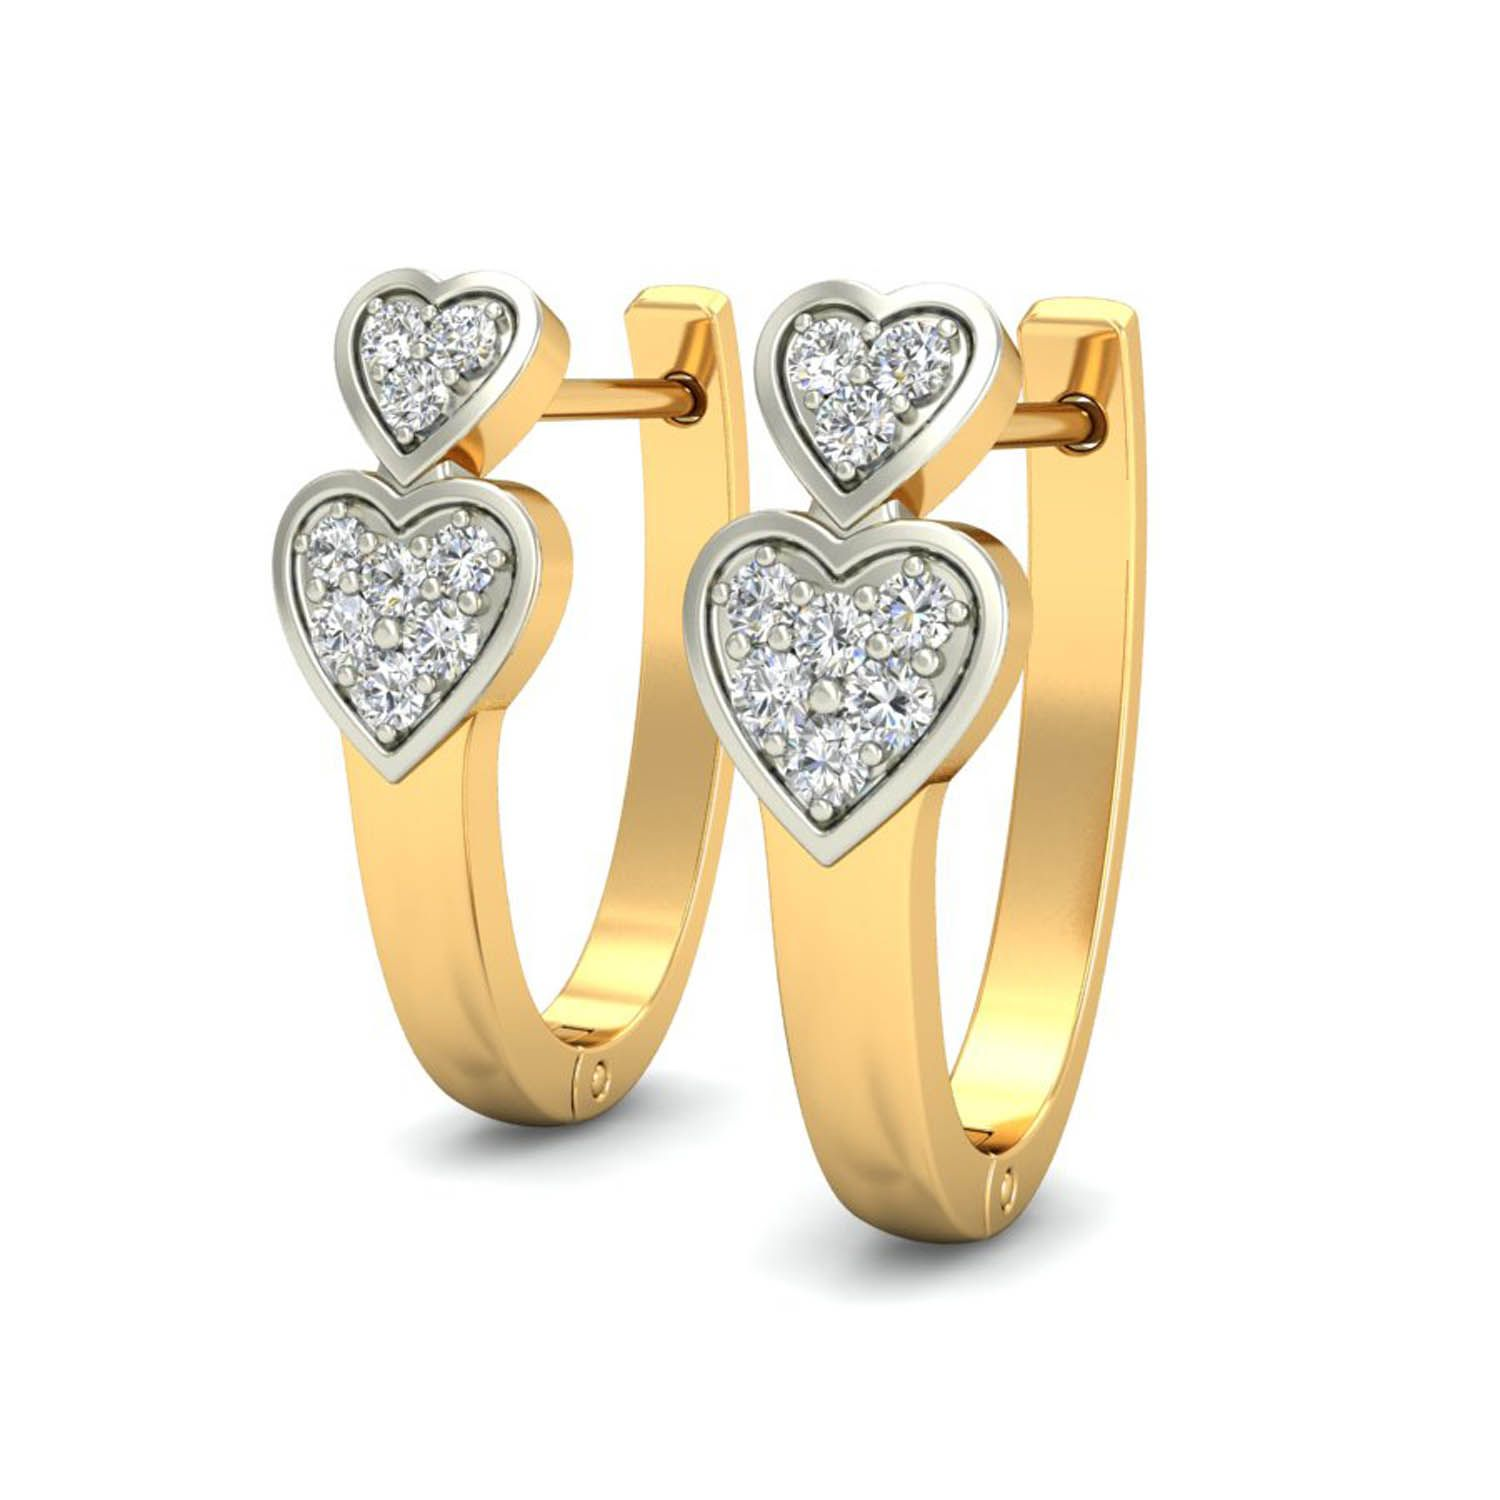 These Beautiful Heart Shaped Earrings Now Only At Jewels4u In